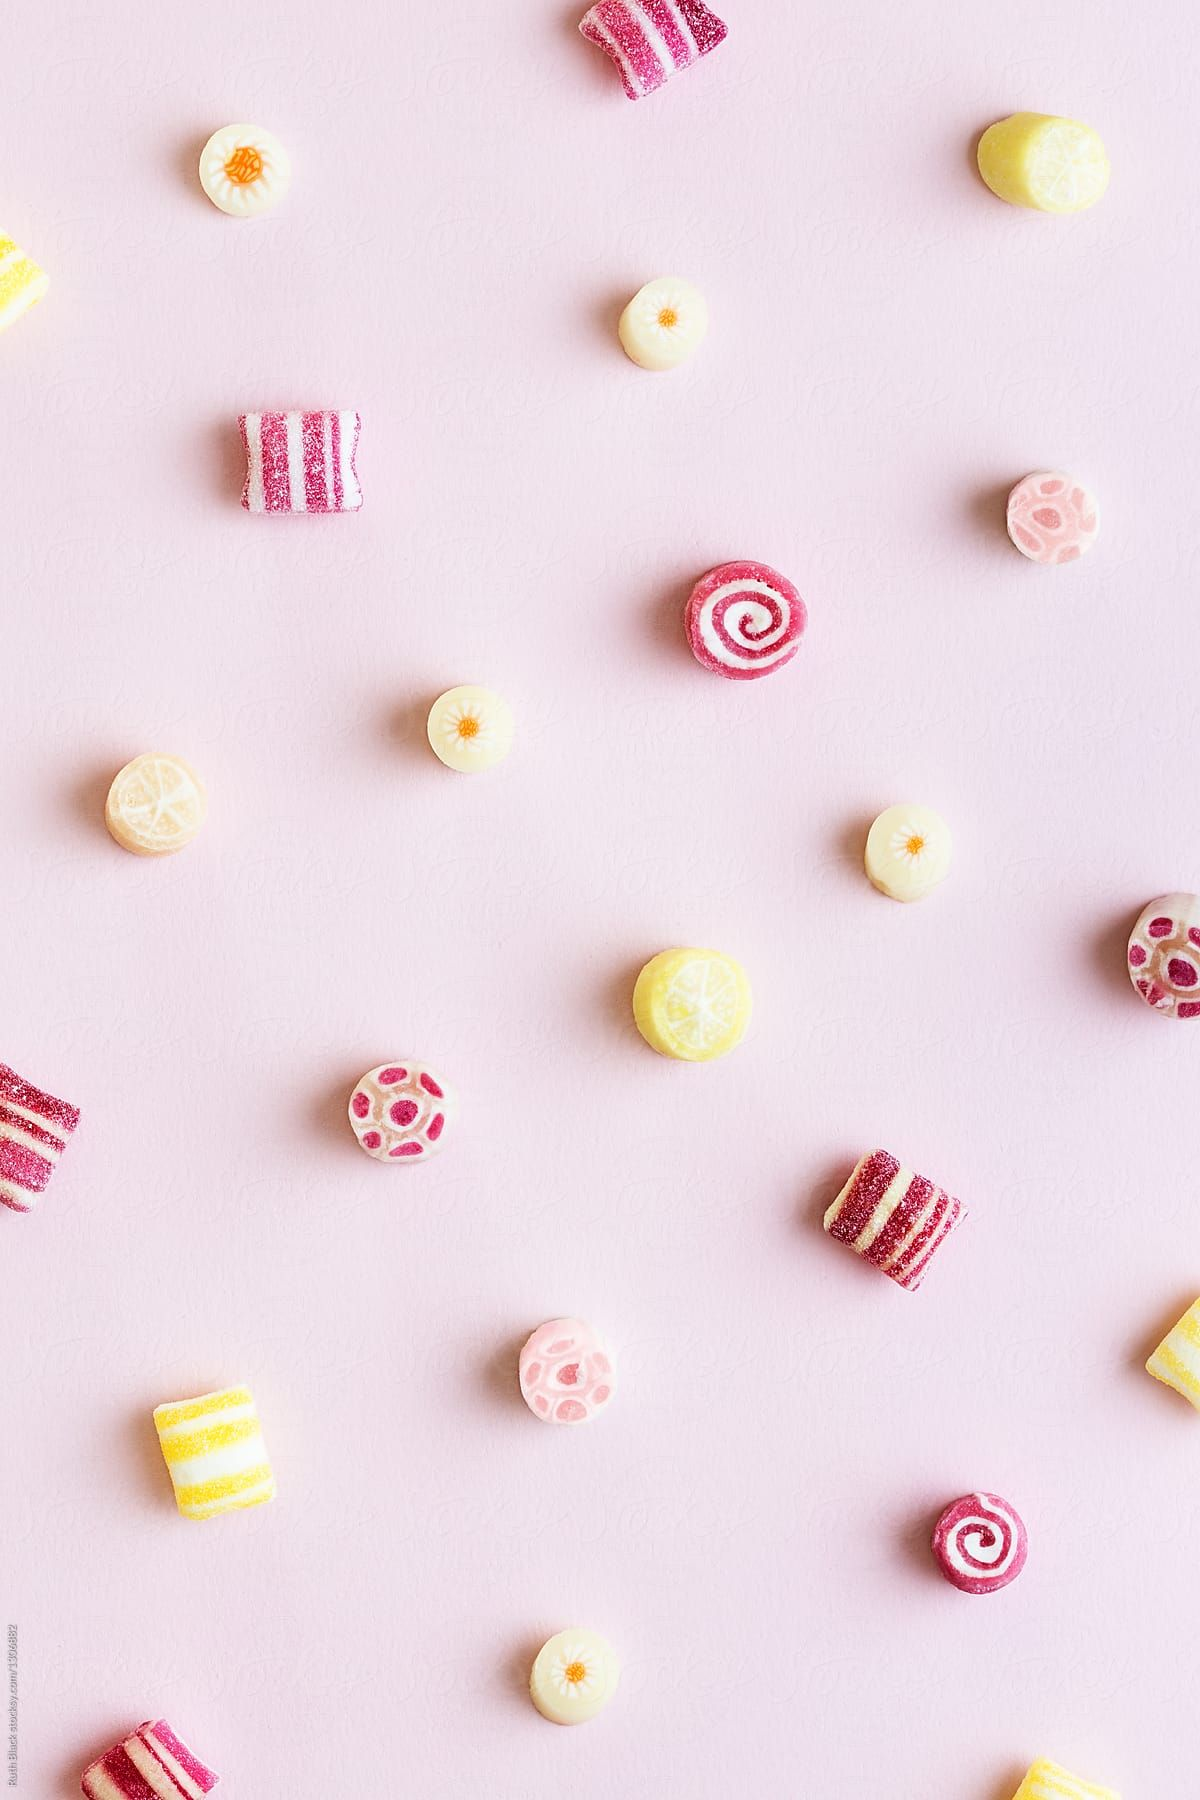 Candy background by Ruth Black for Stocksy United  Candy